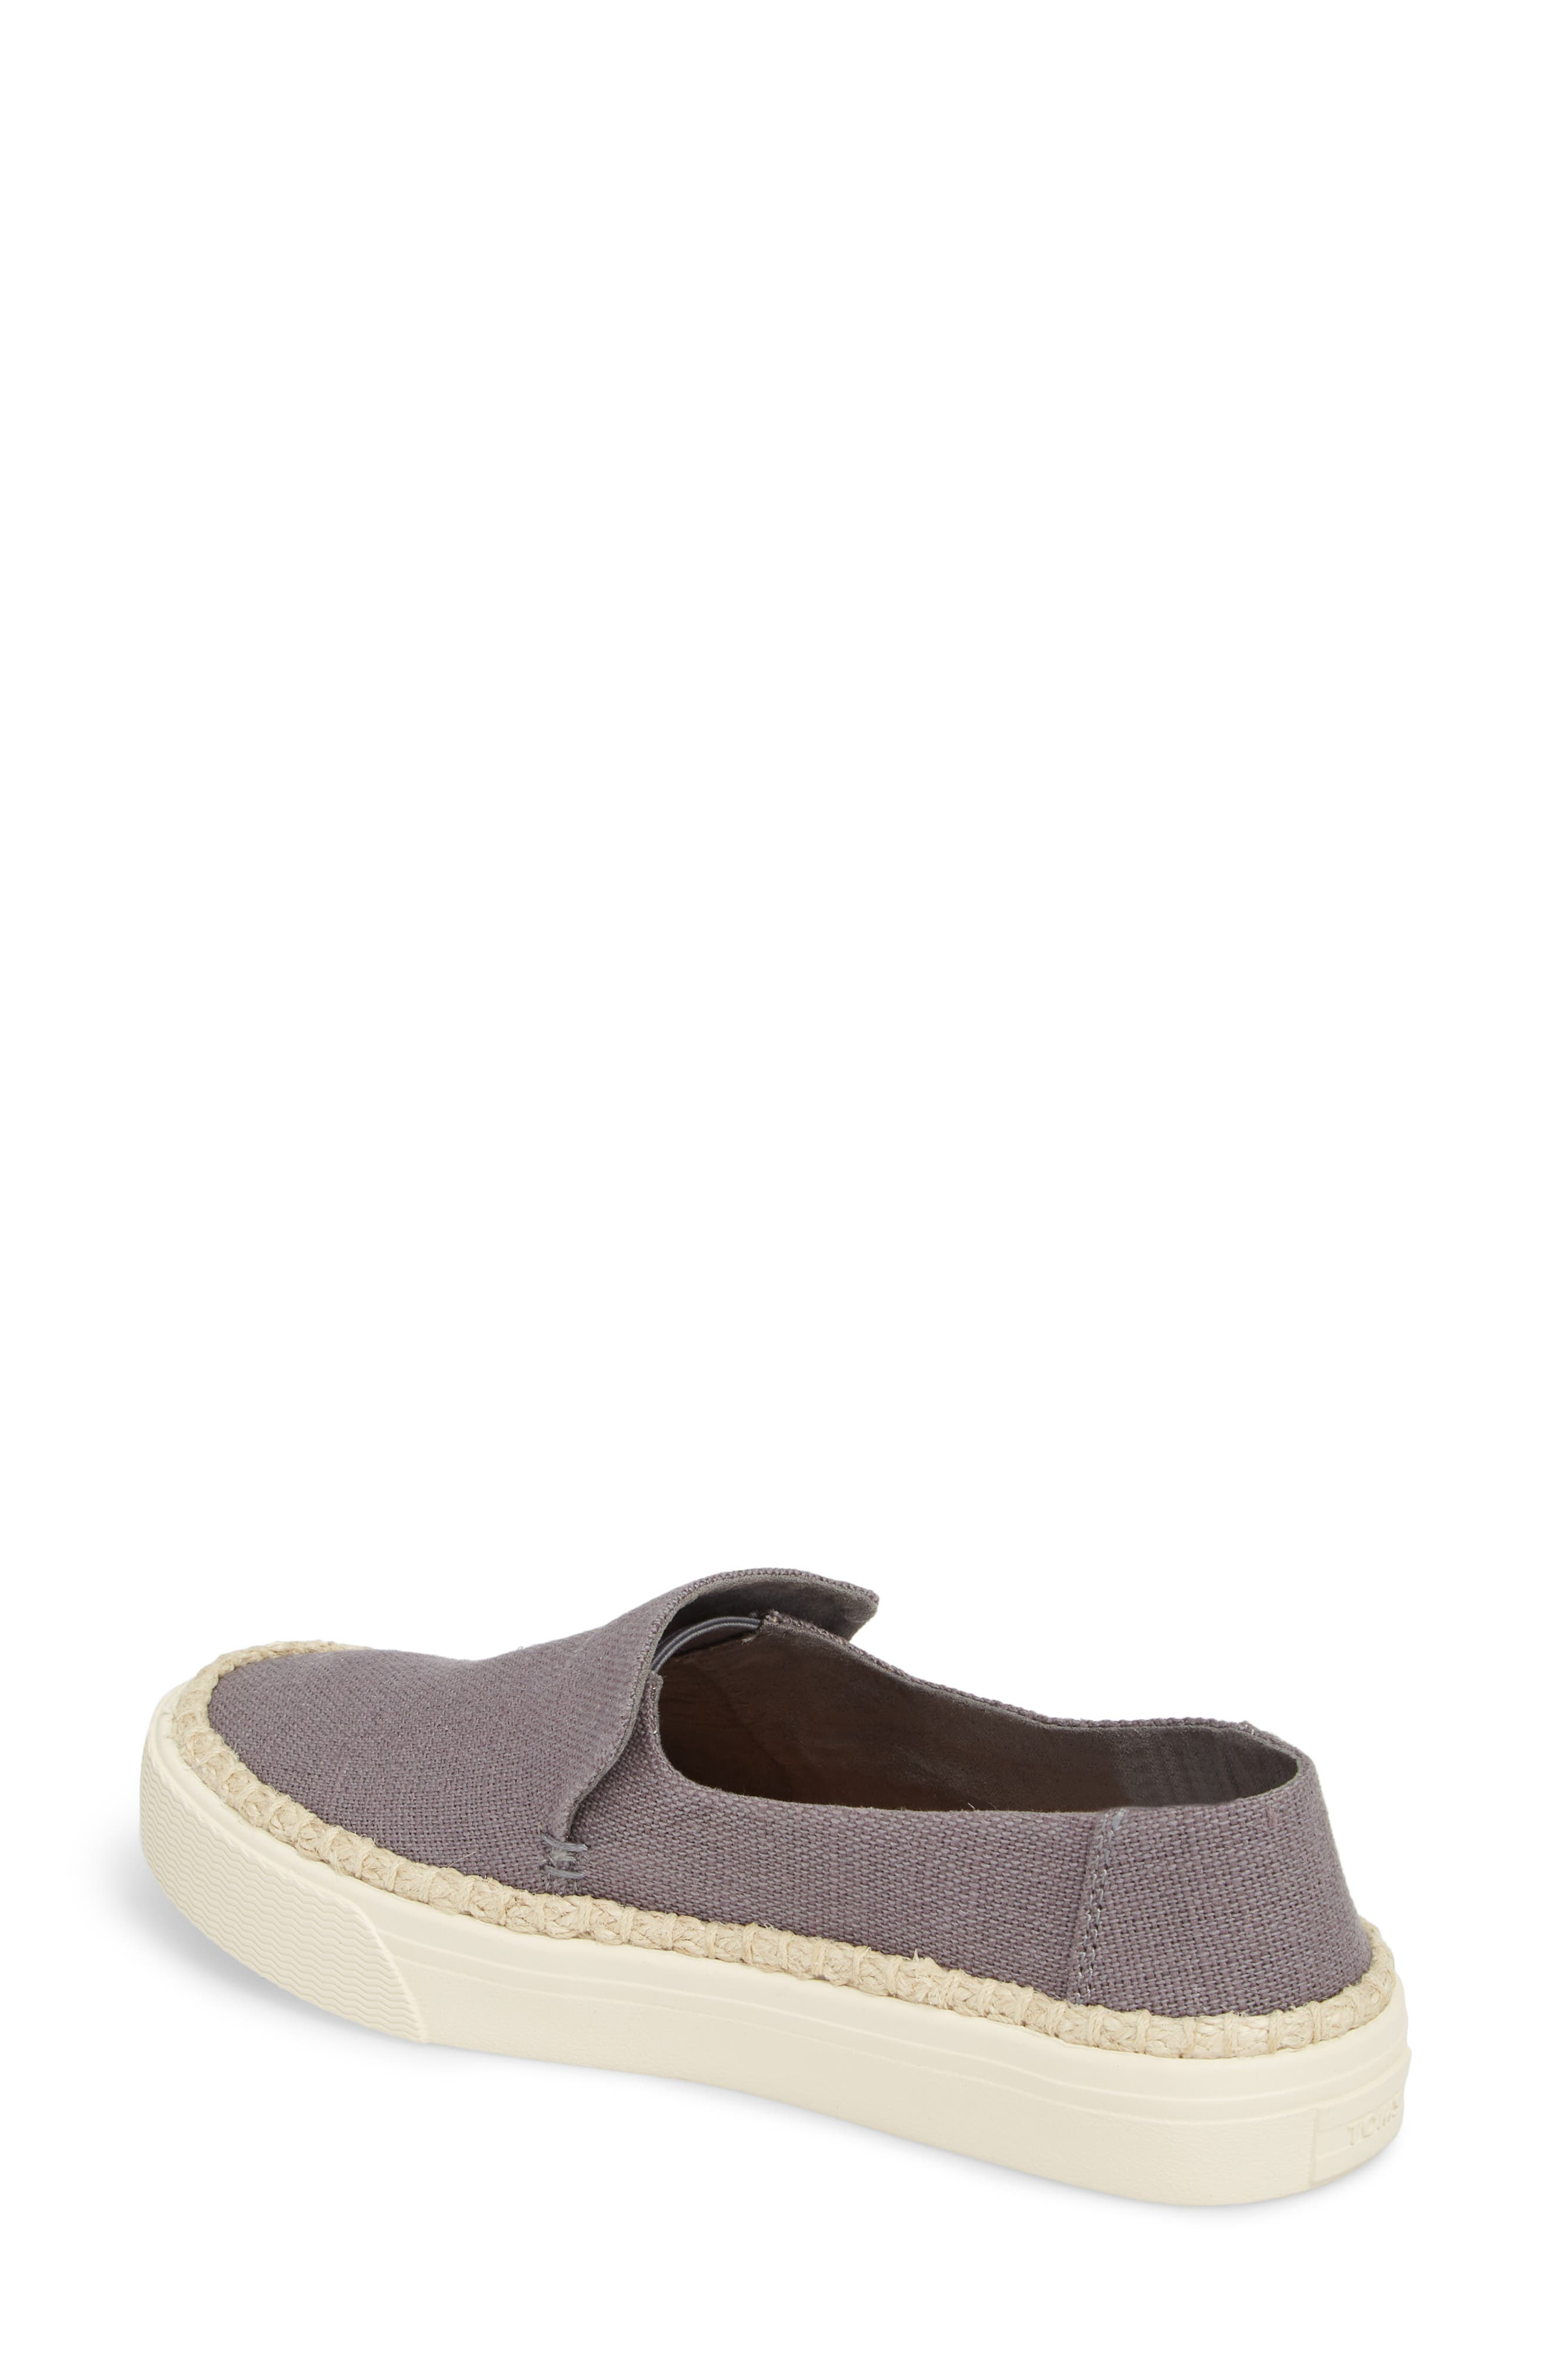 Sunset Slip-On,                             Alternate thumbnail 2, color,                             Shade Heritage Canvas/ Rope